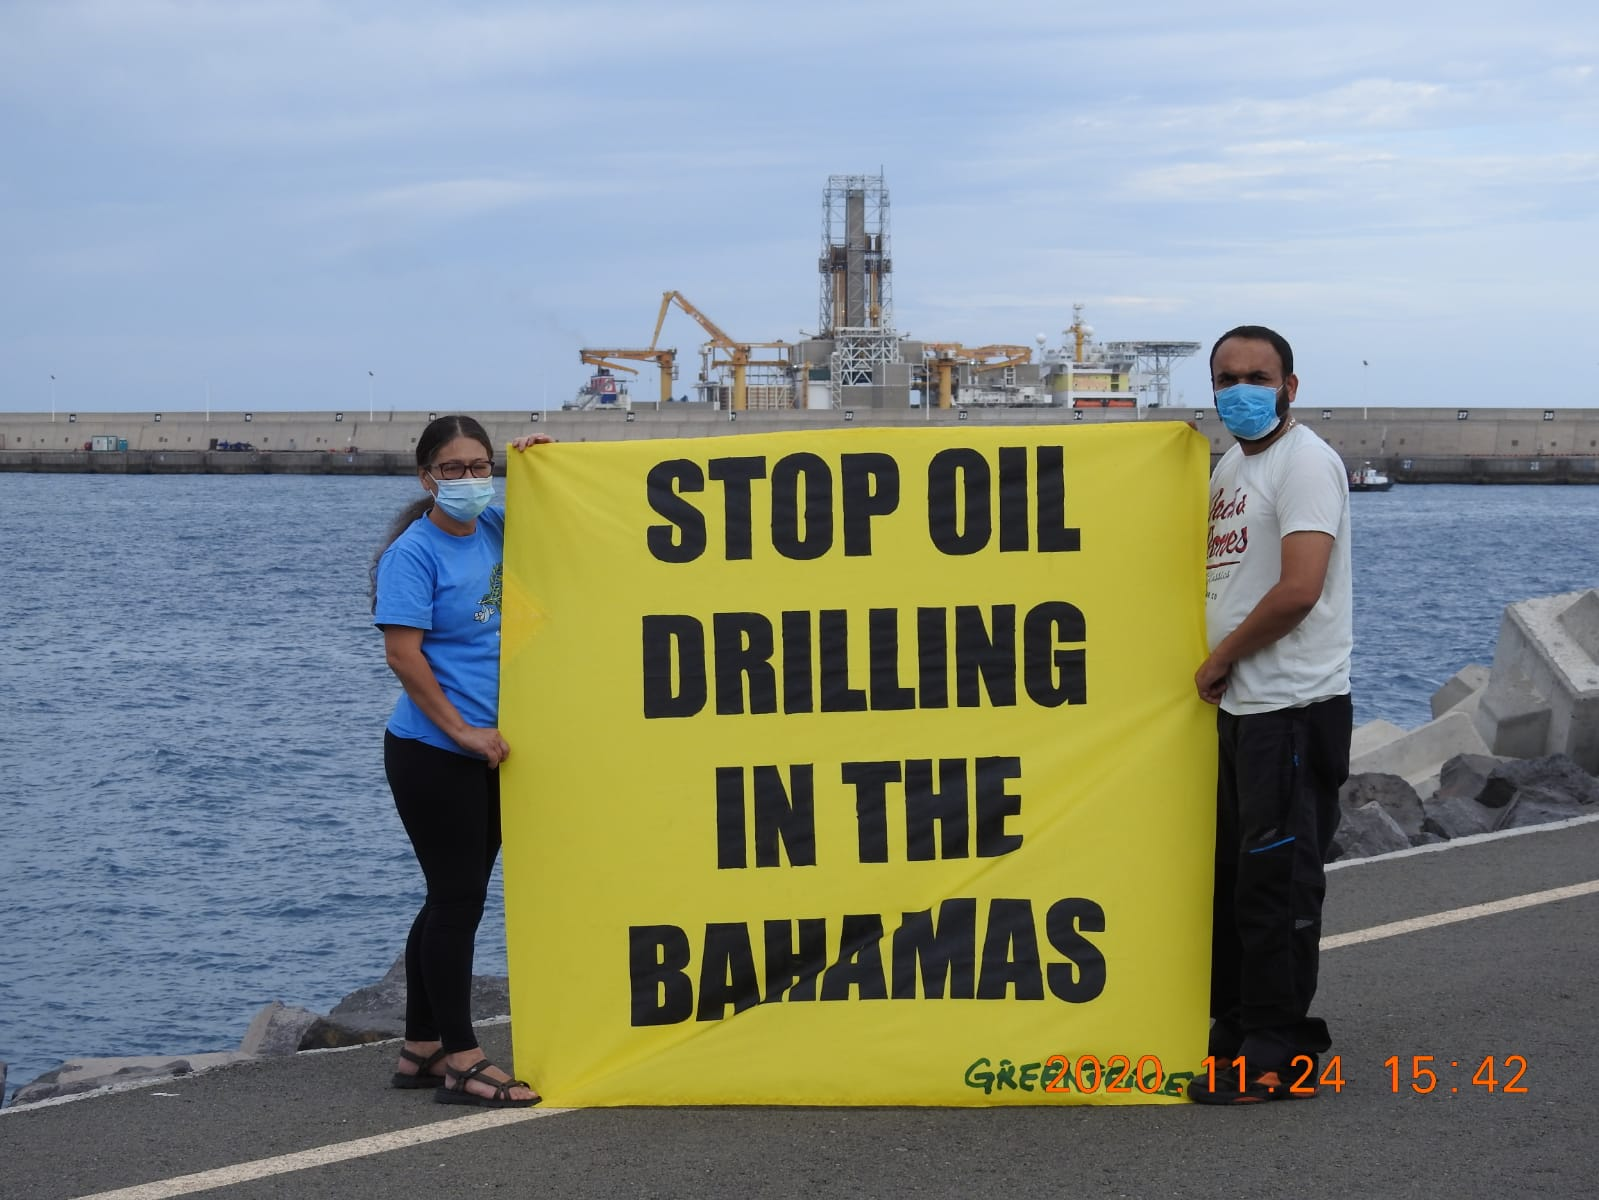 Greenpeace lends support to oil drilling protest